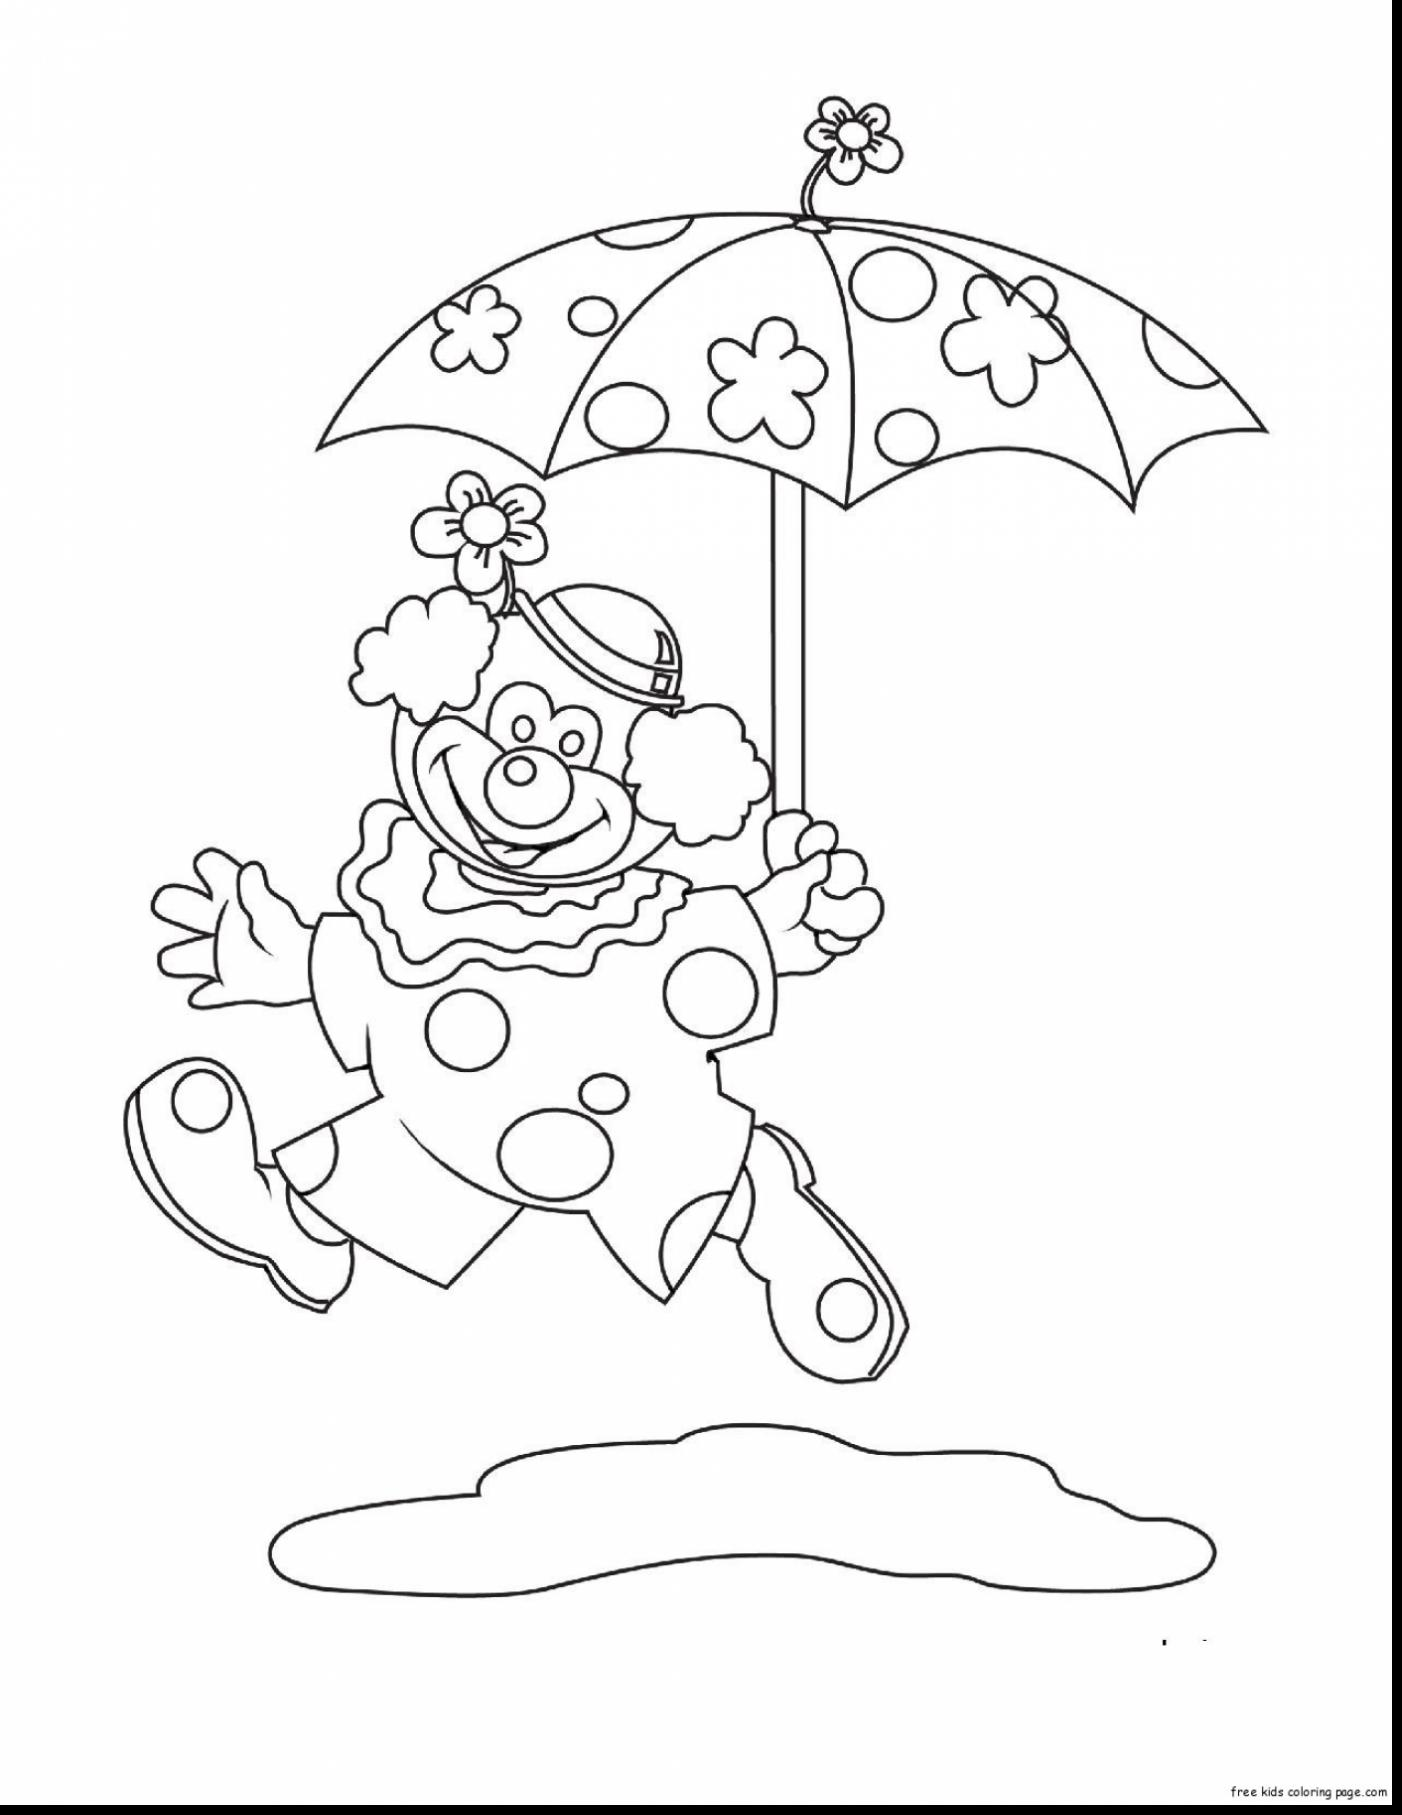 Krusty The Clown Drawing at GetDrawings.com | Free for personal use ...